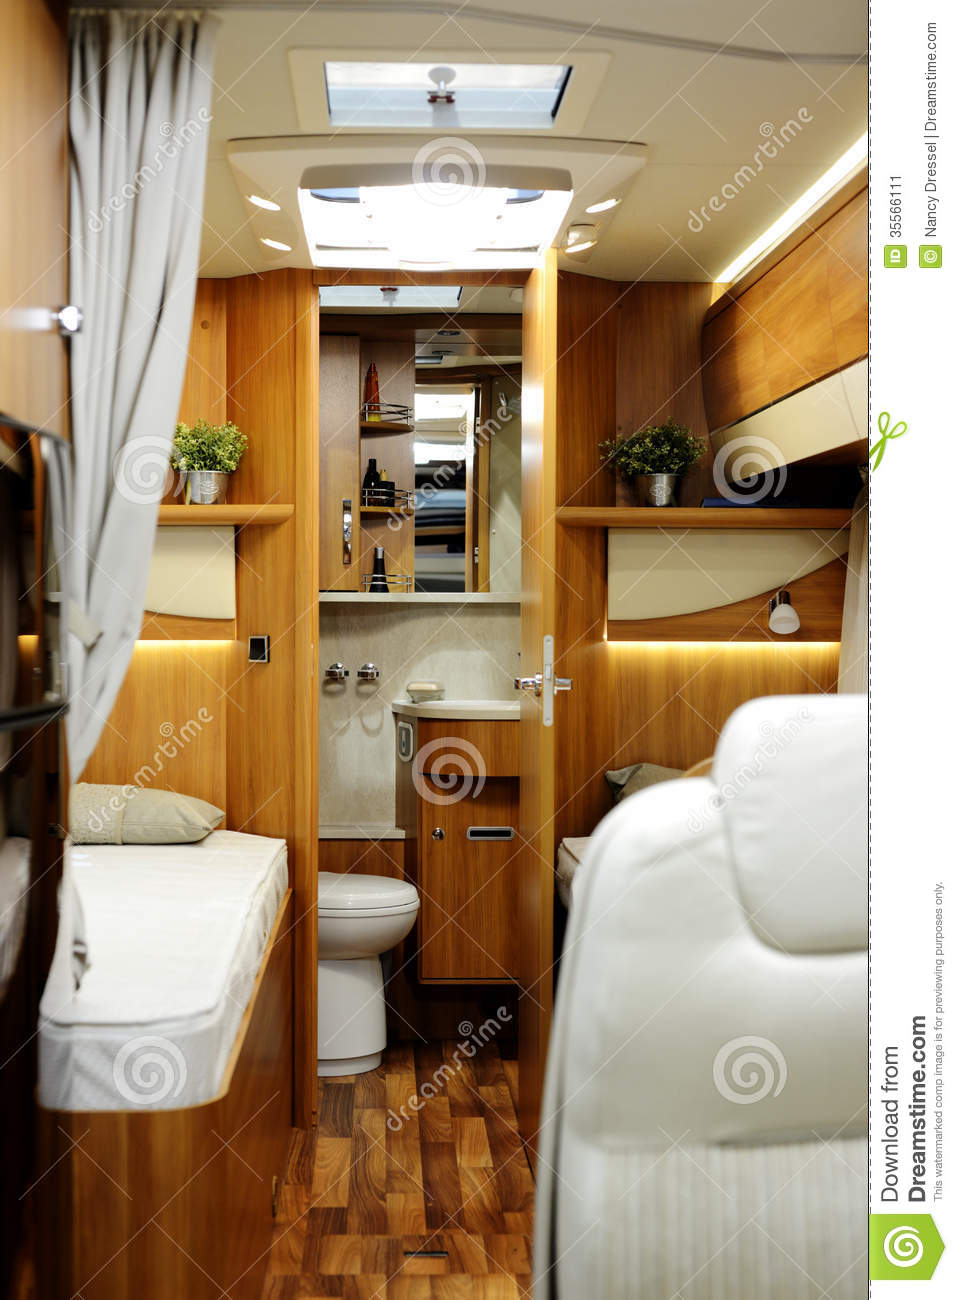 New motor home inside view stock image. Image of park - 35566111